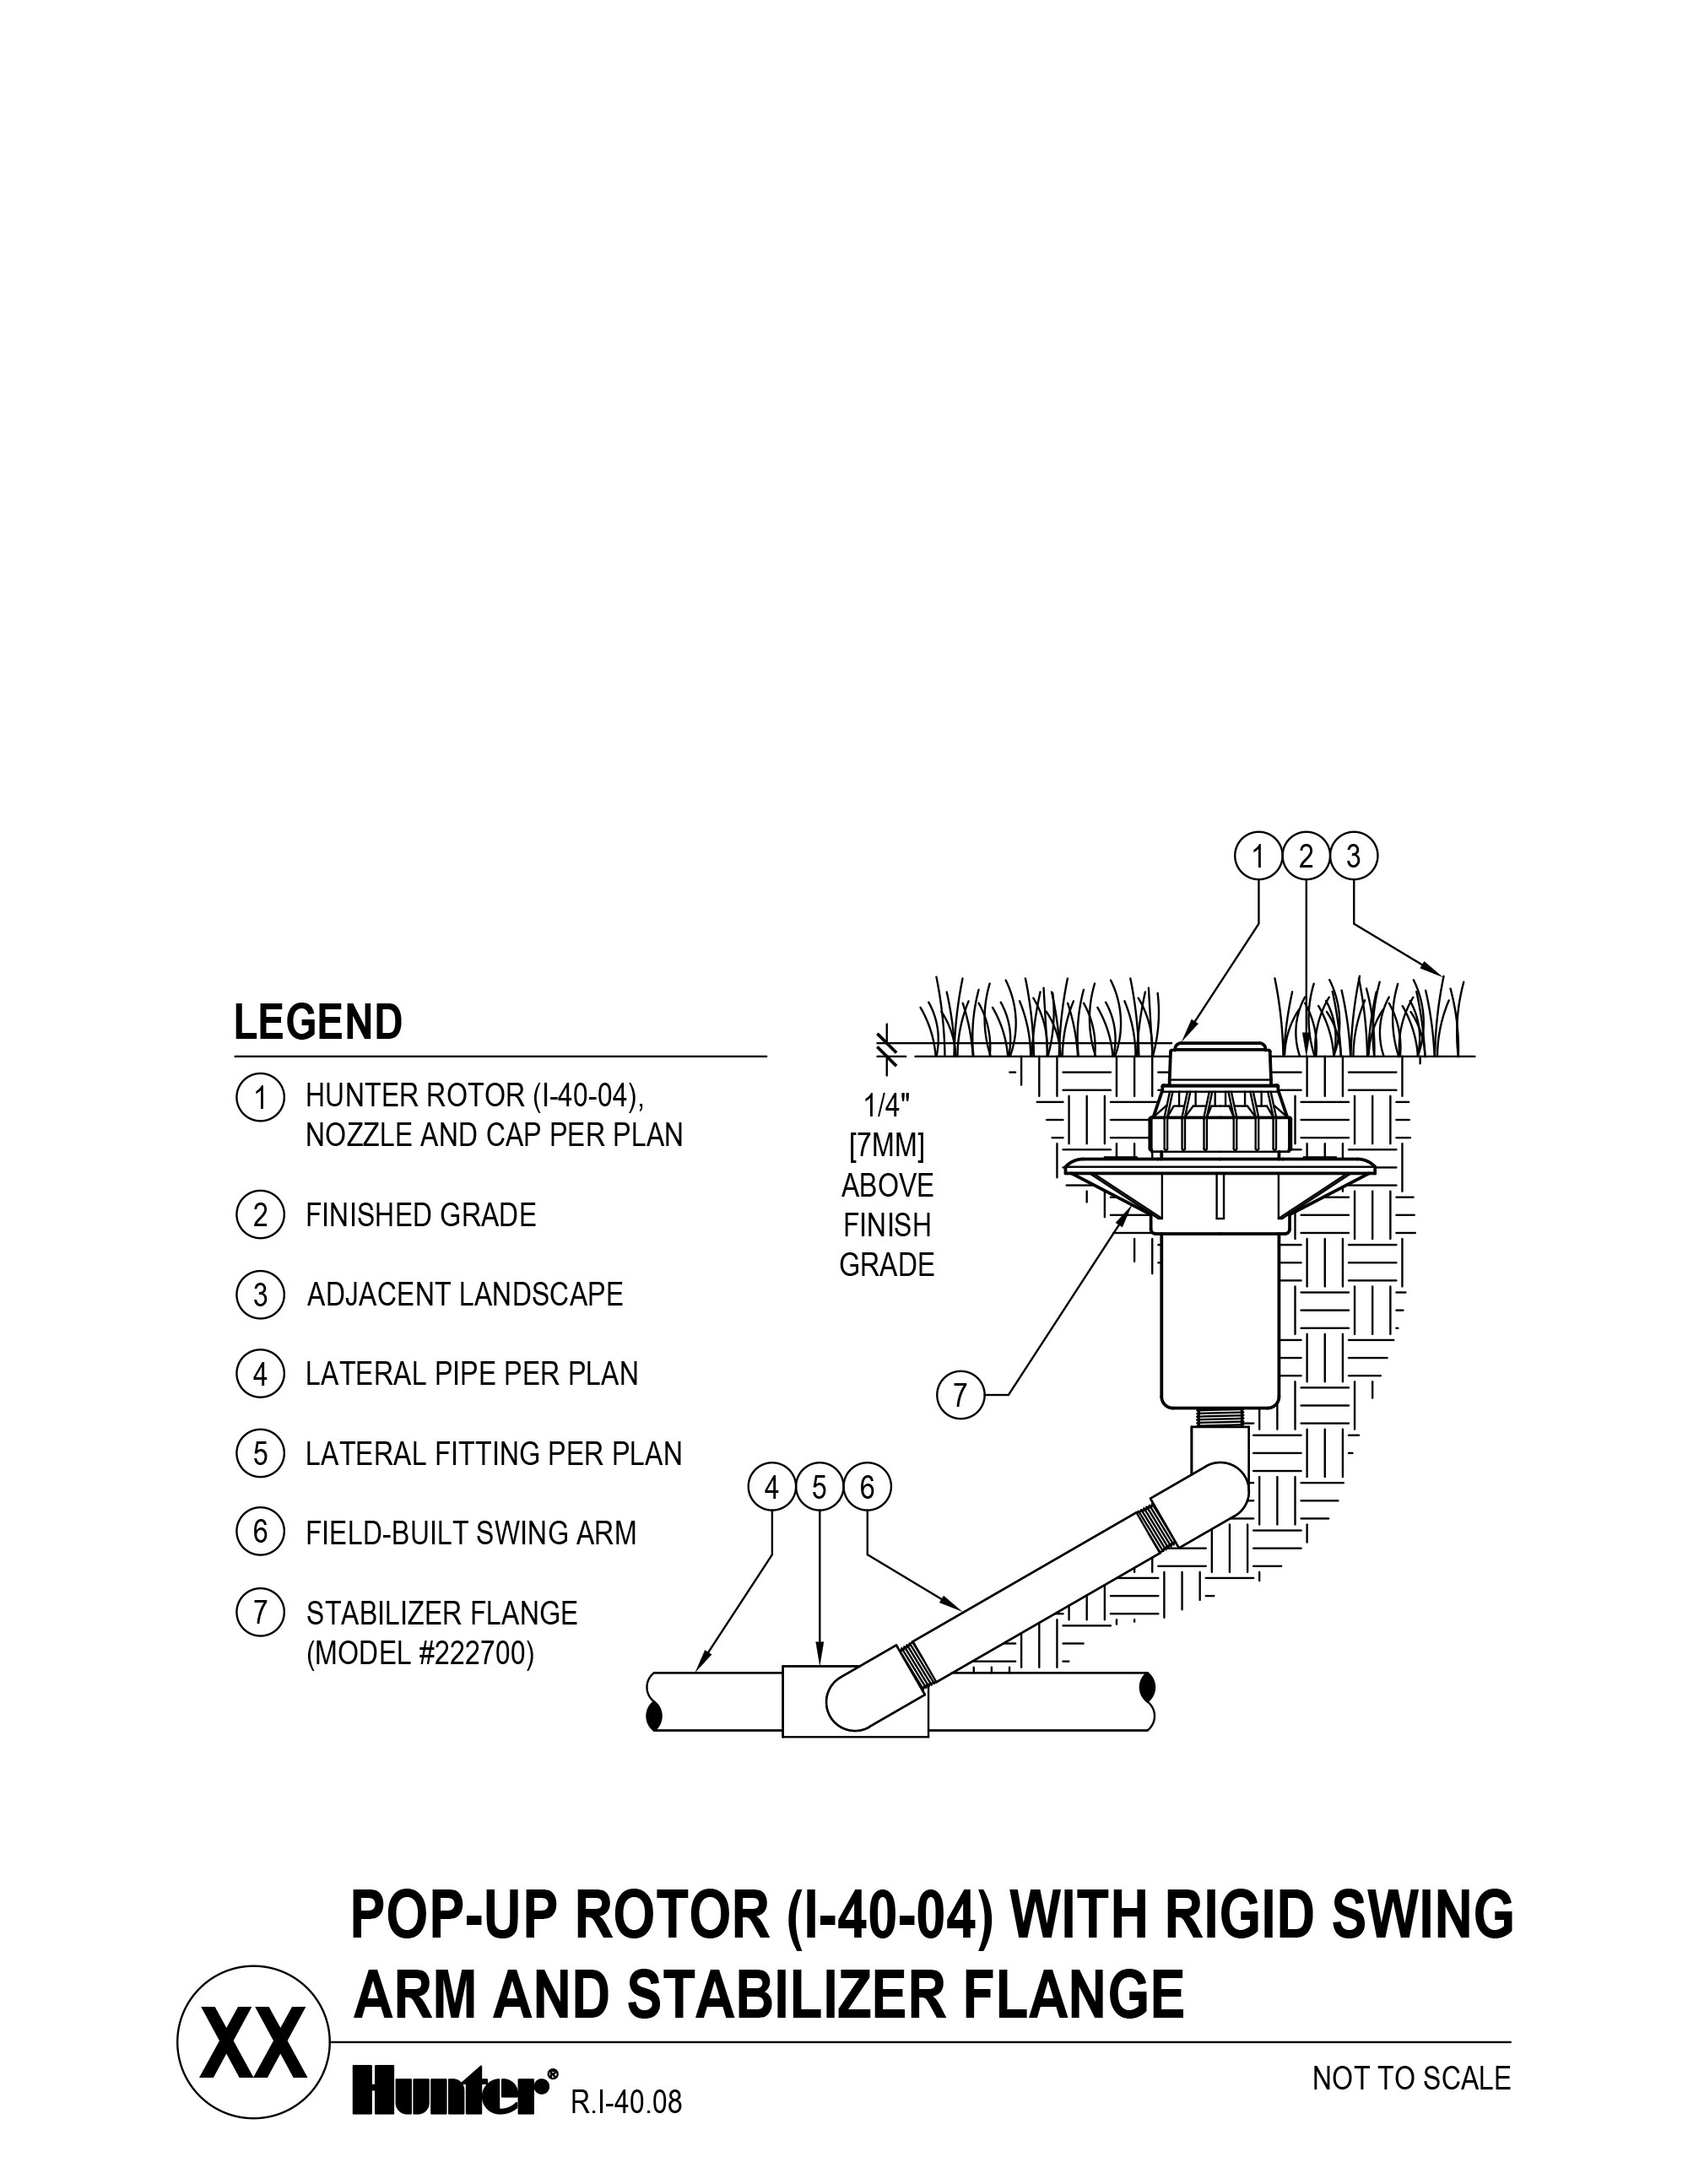 CAD - I-40-04 - Pop-up Rotor with Rigid Swing Arm and Stabilizer Flange